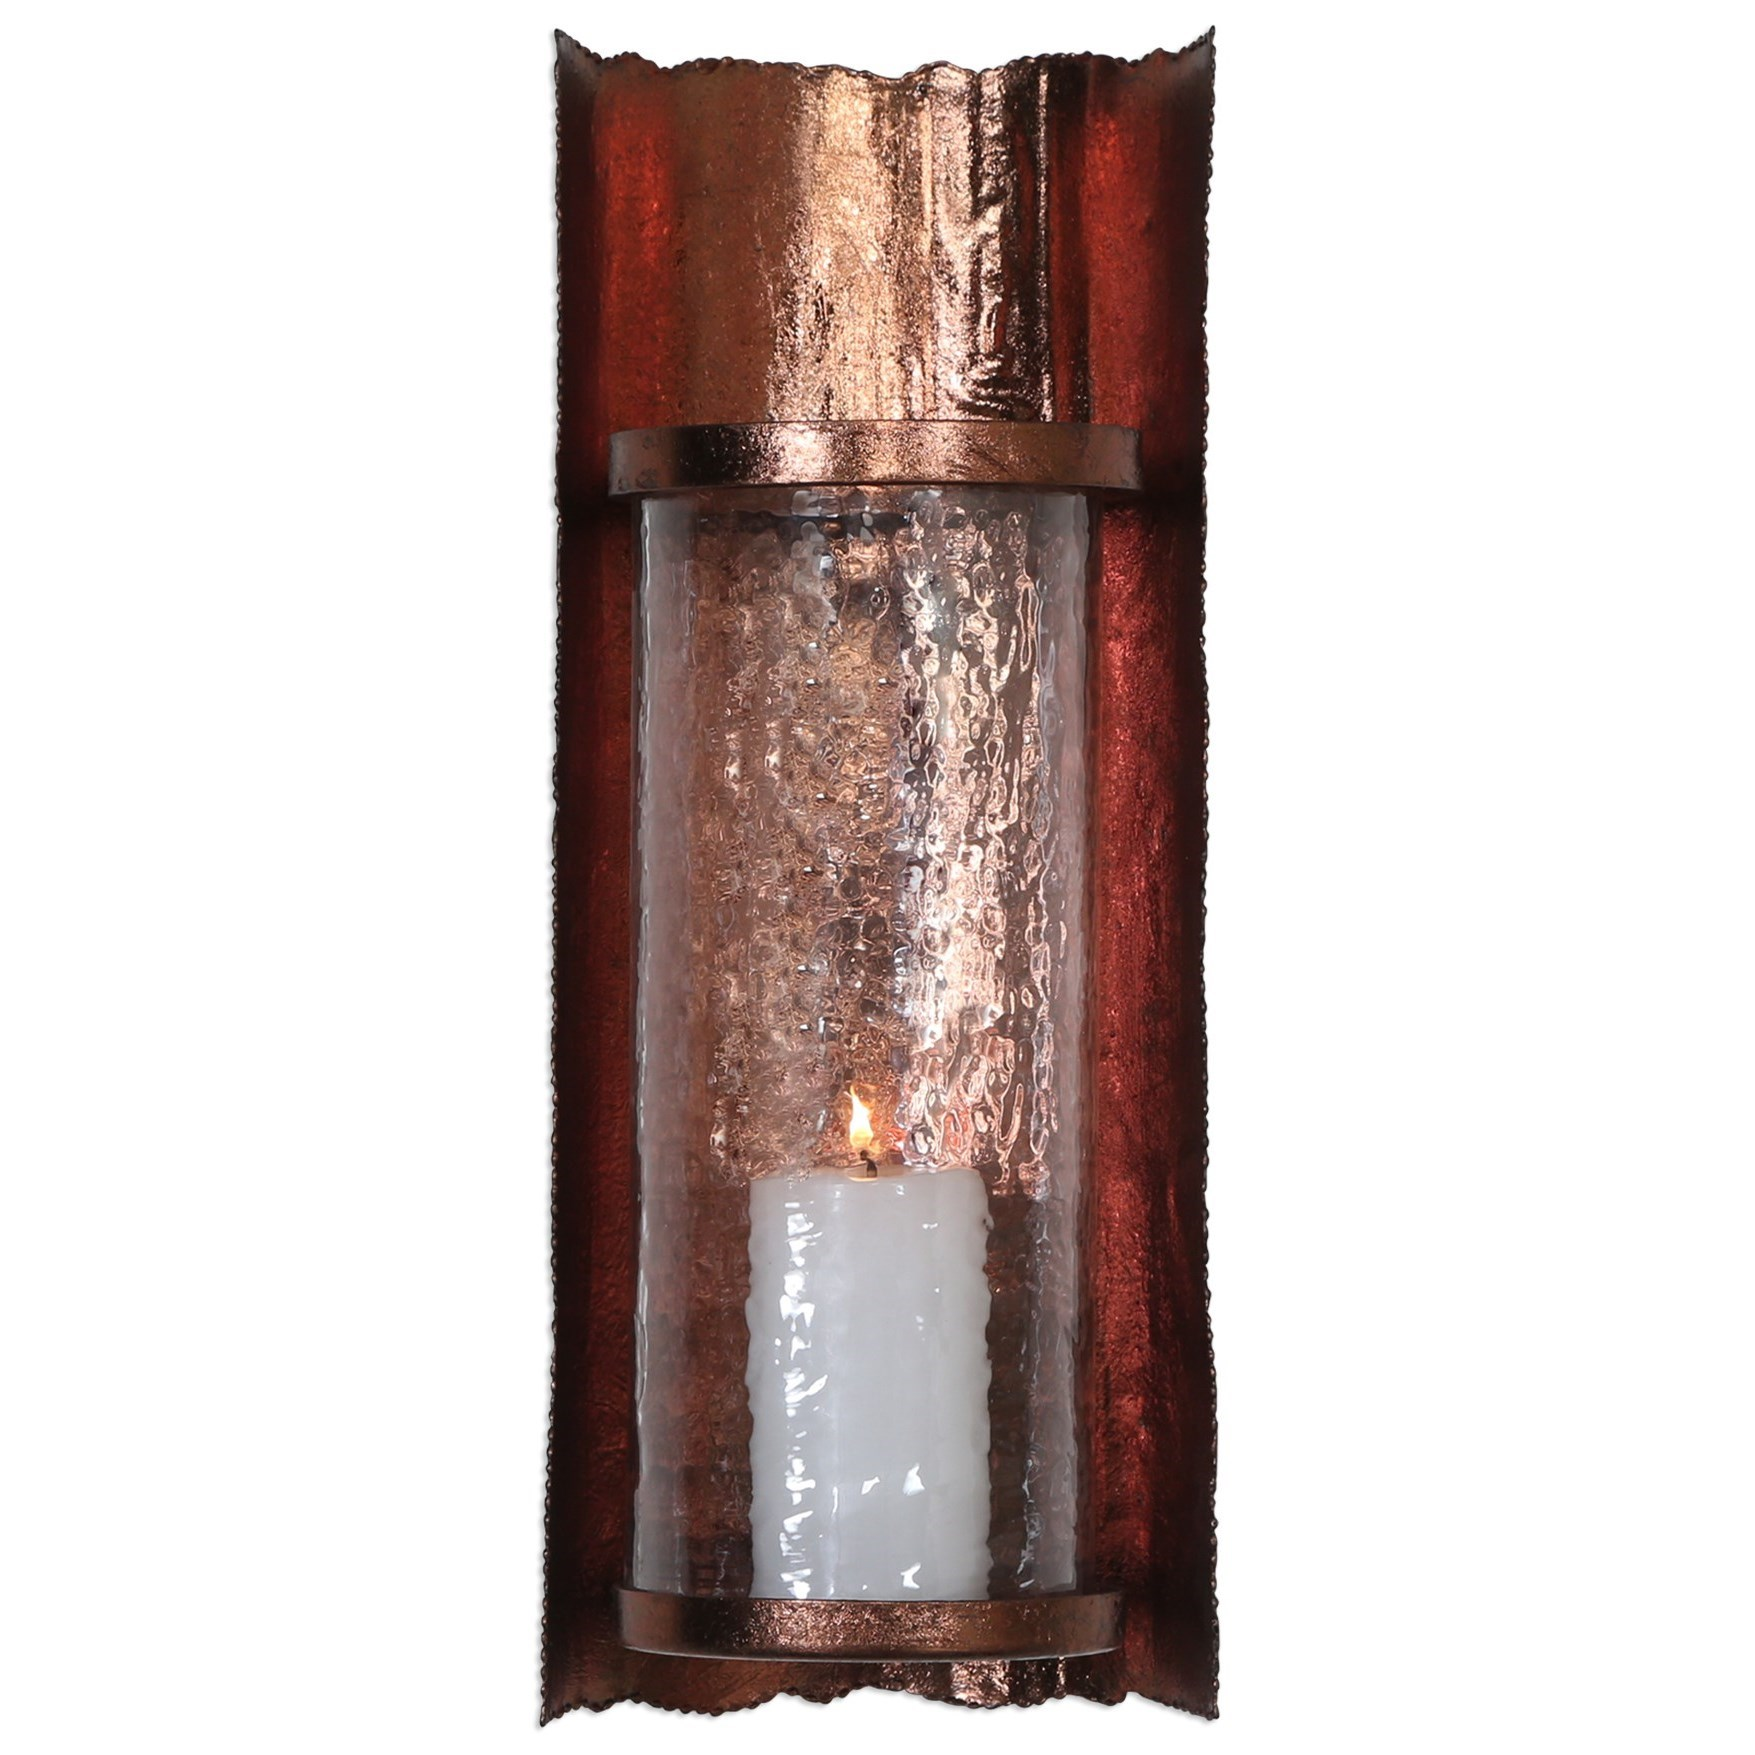 Accessories Goffredo Candle Wall Sconce by Uttermost at Upper Room Home Furnishings